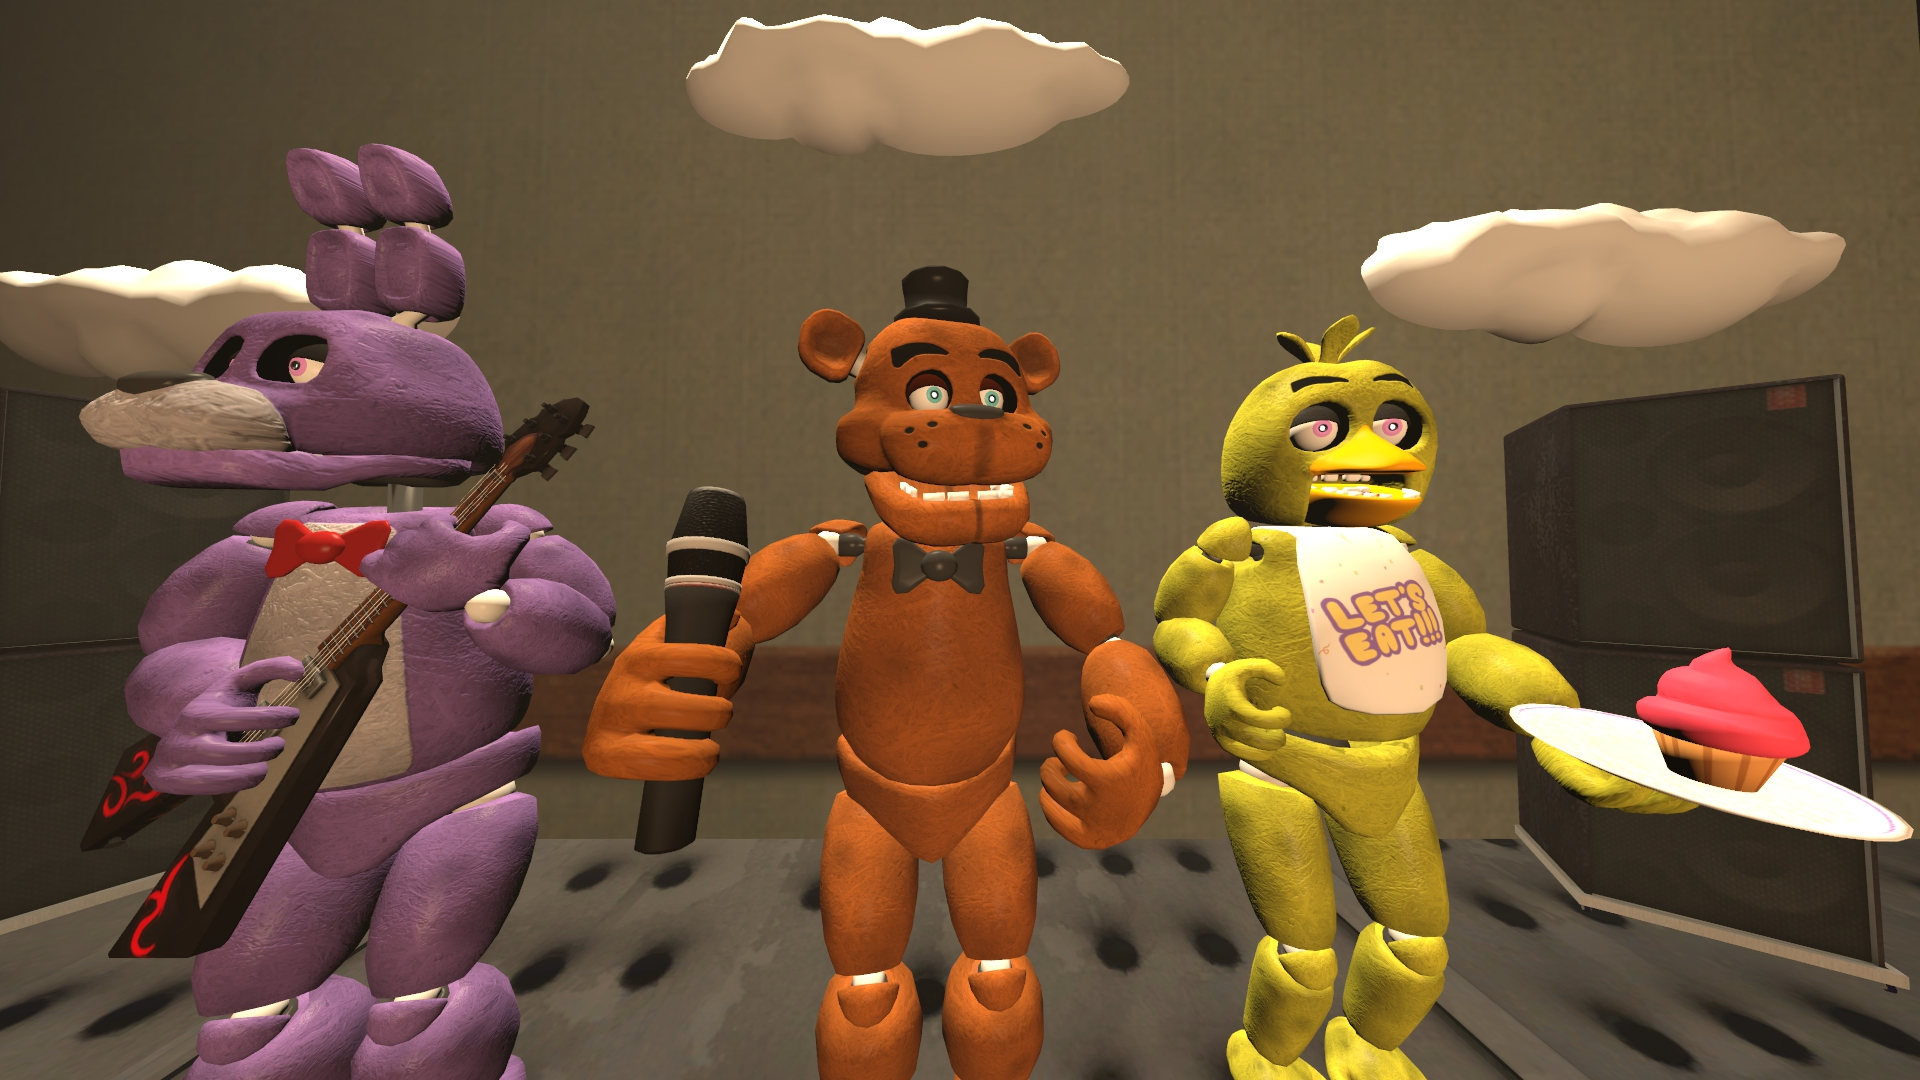 Download five nights at freddy s models by deadmanwalking289 on